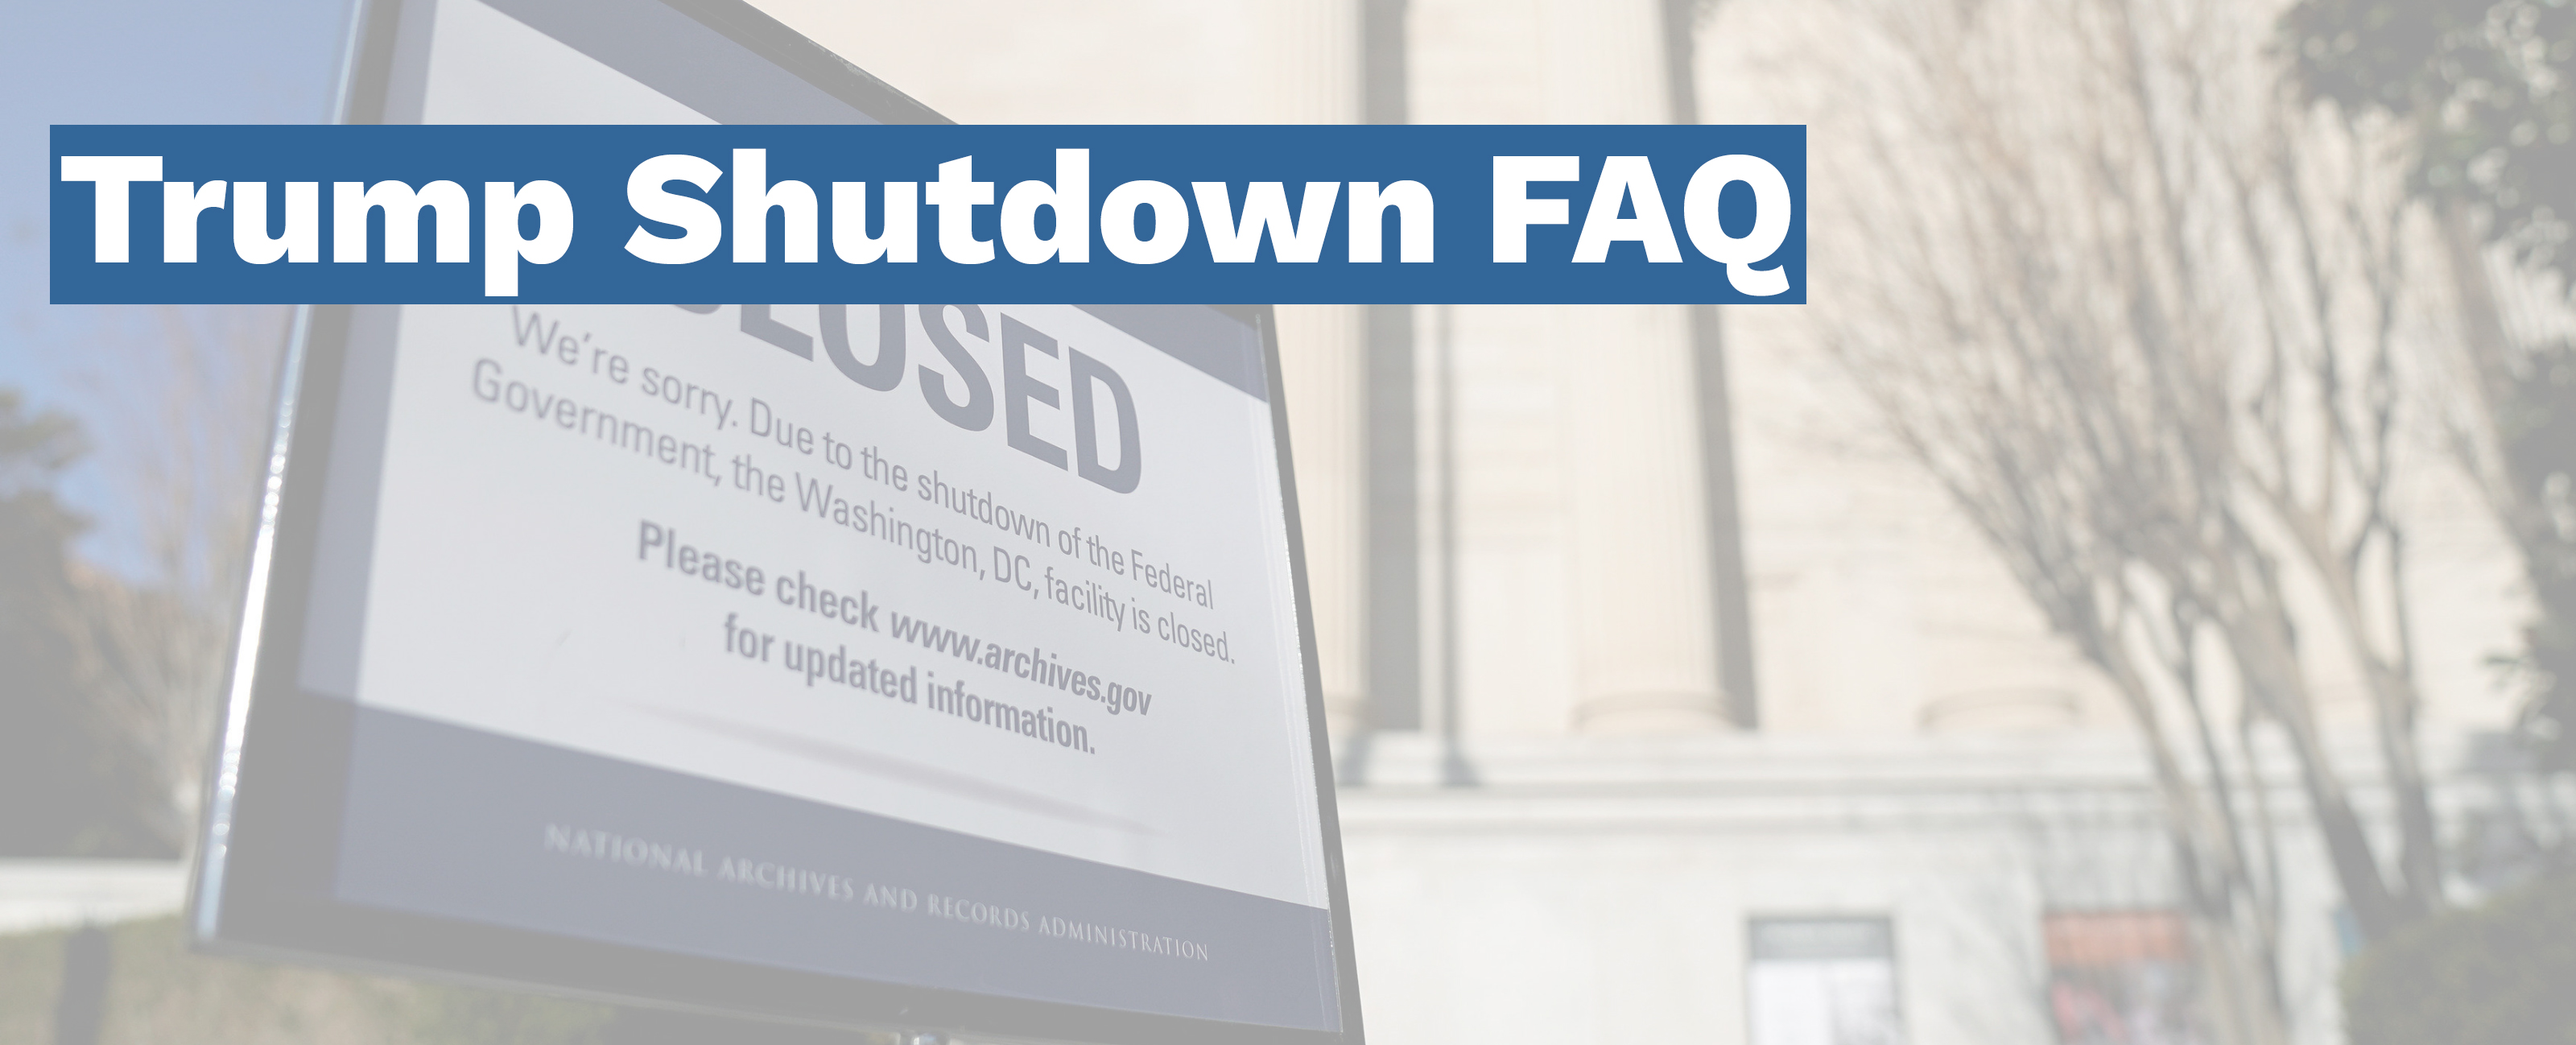 The Federal Government is partially shut down